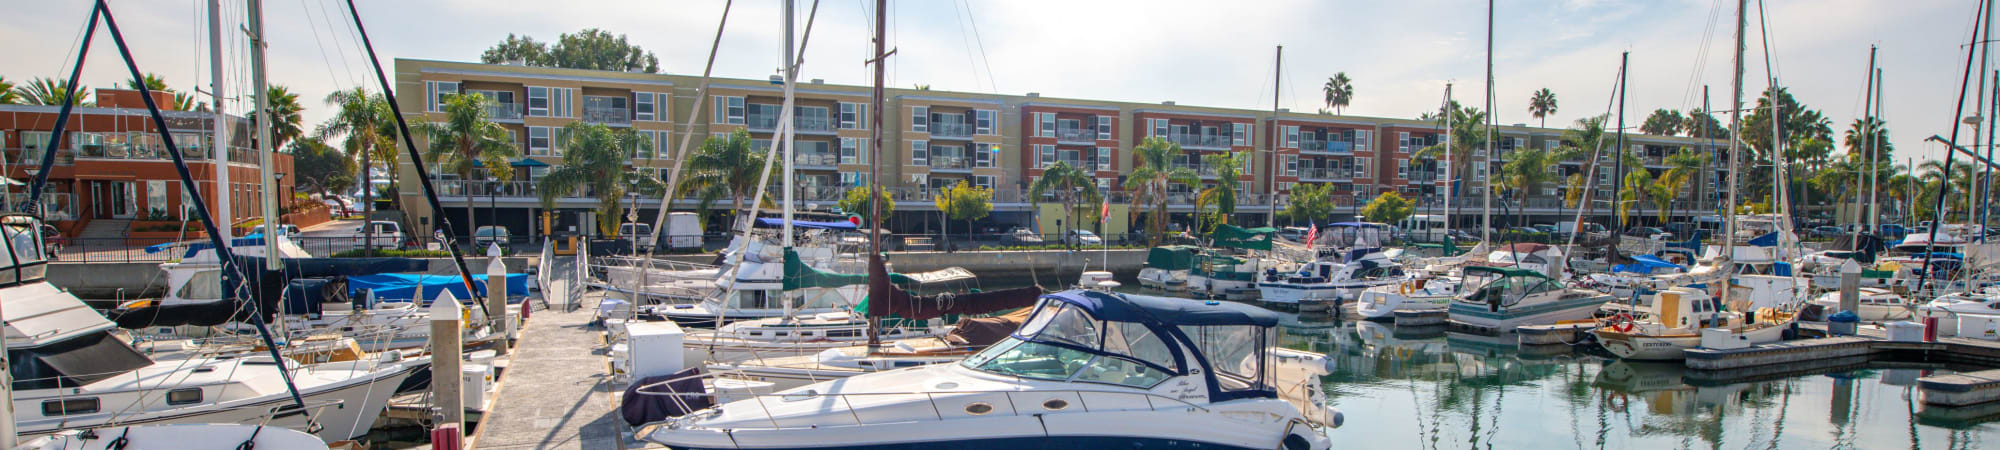 Privacy policy for Harborside Marina Bay Apartments with outdoor pool, in Marina del Rey, California